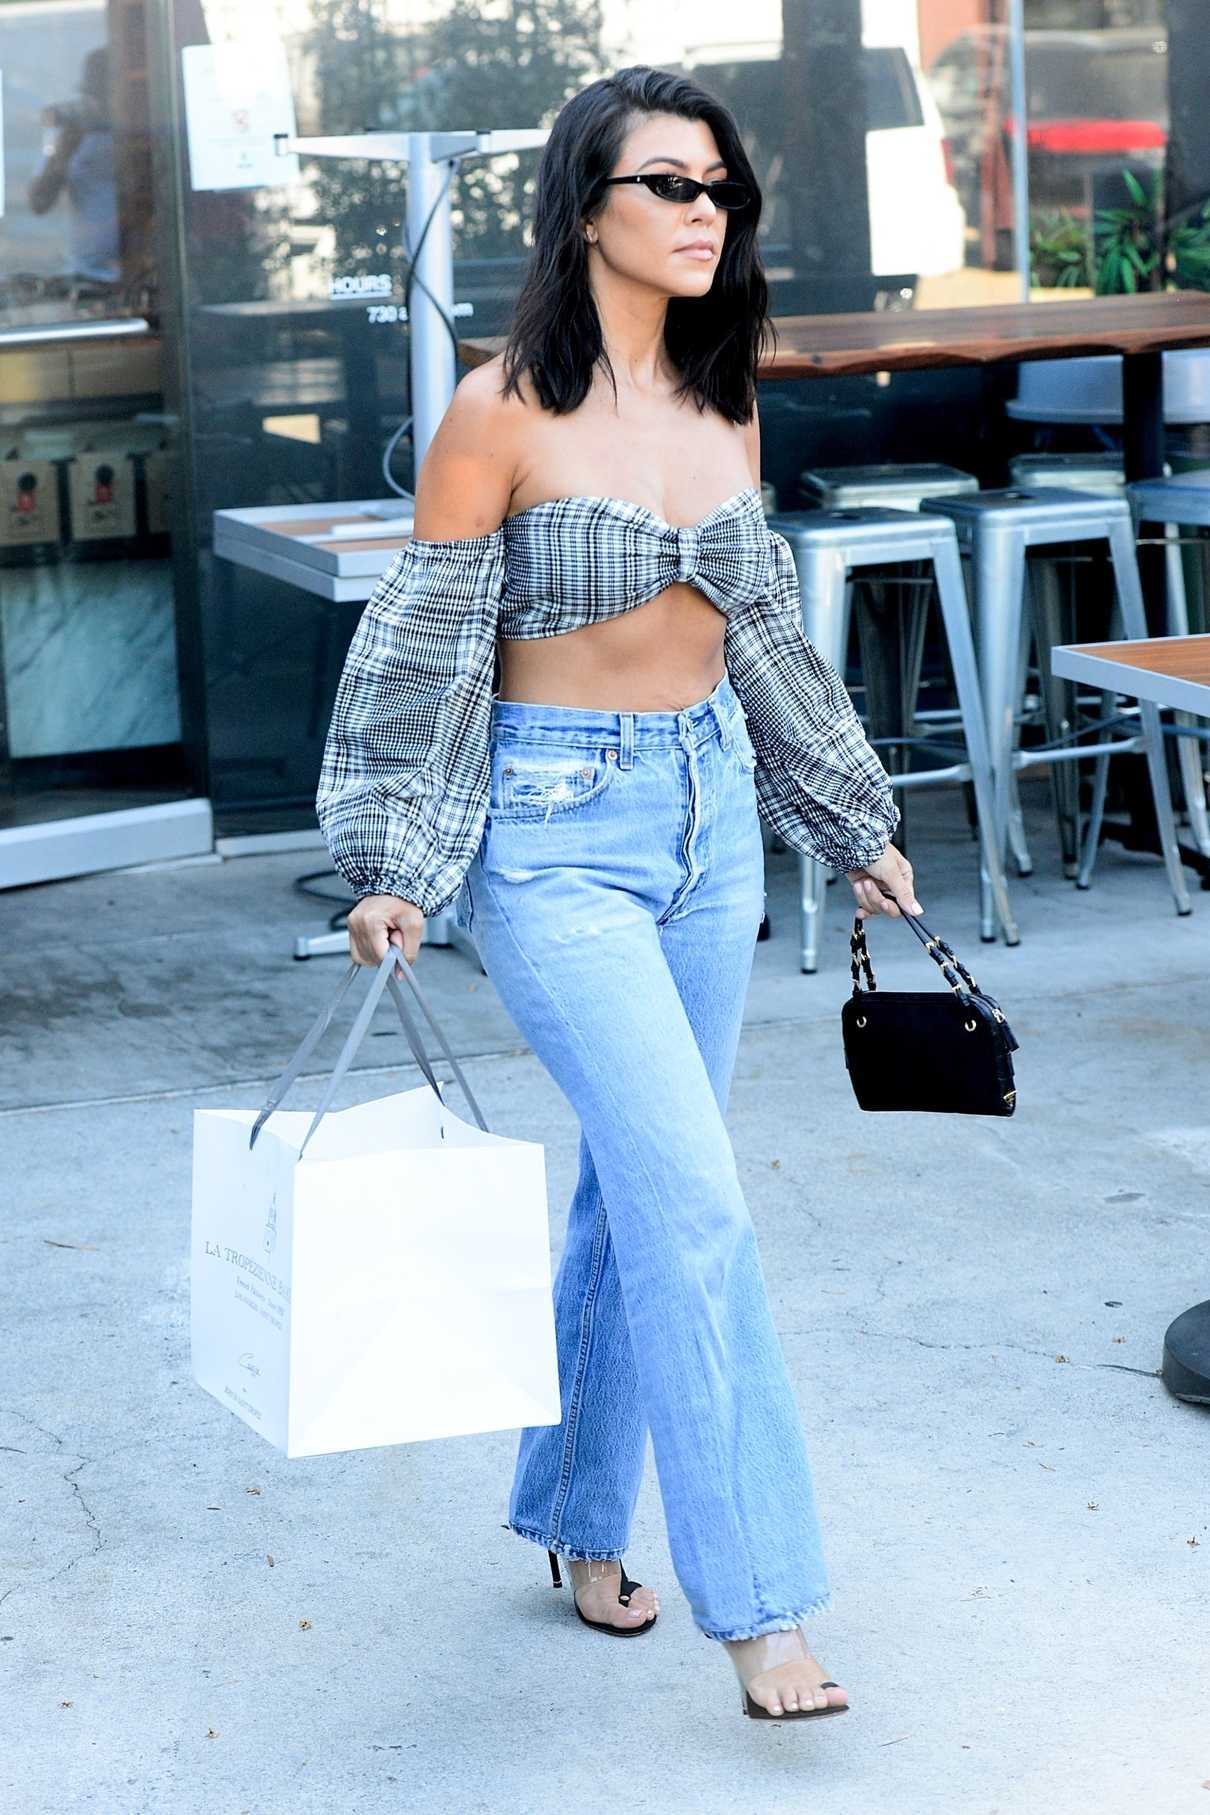 Kourtney Kardashian In A Ripped Blue Jeans Arrives At Paint